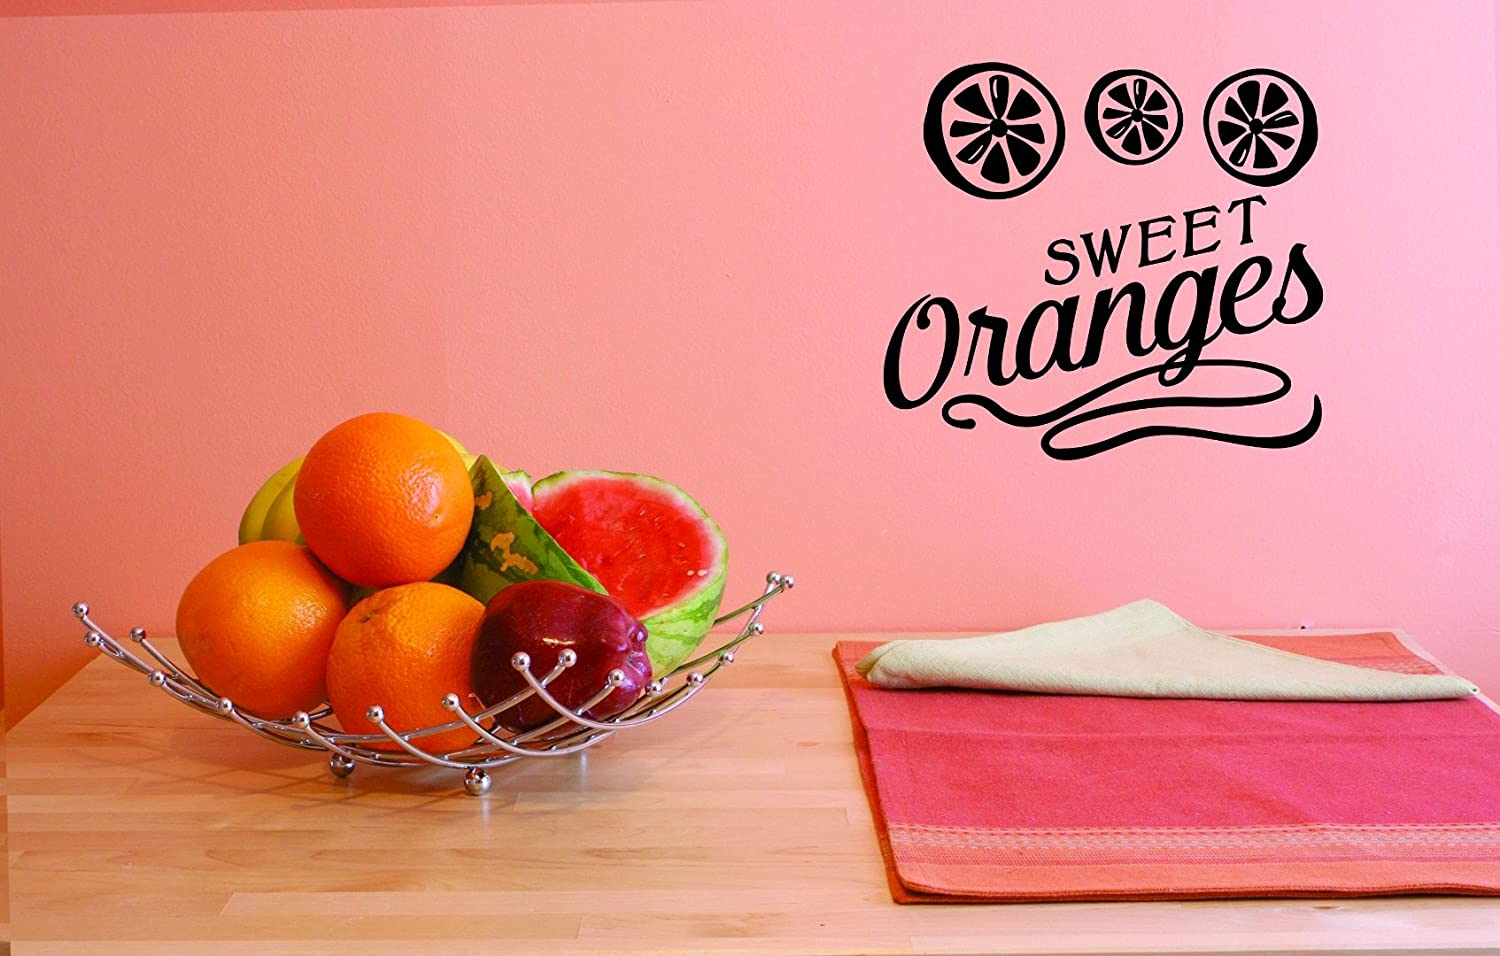 Design with Vinyl JER 1816 1 Hot New Decals Sweet Oranges Wall Art Size x 12 Inches Color Black 12 x 12